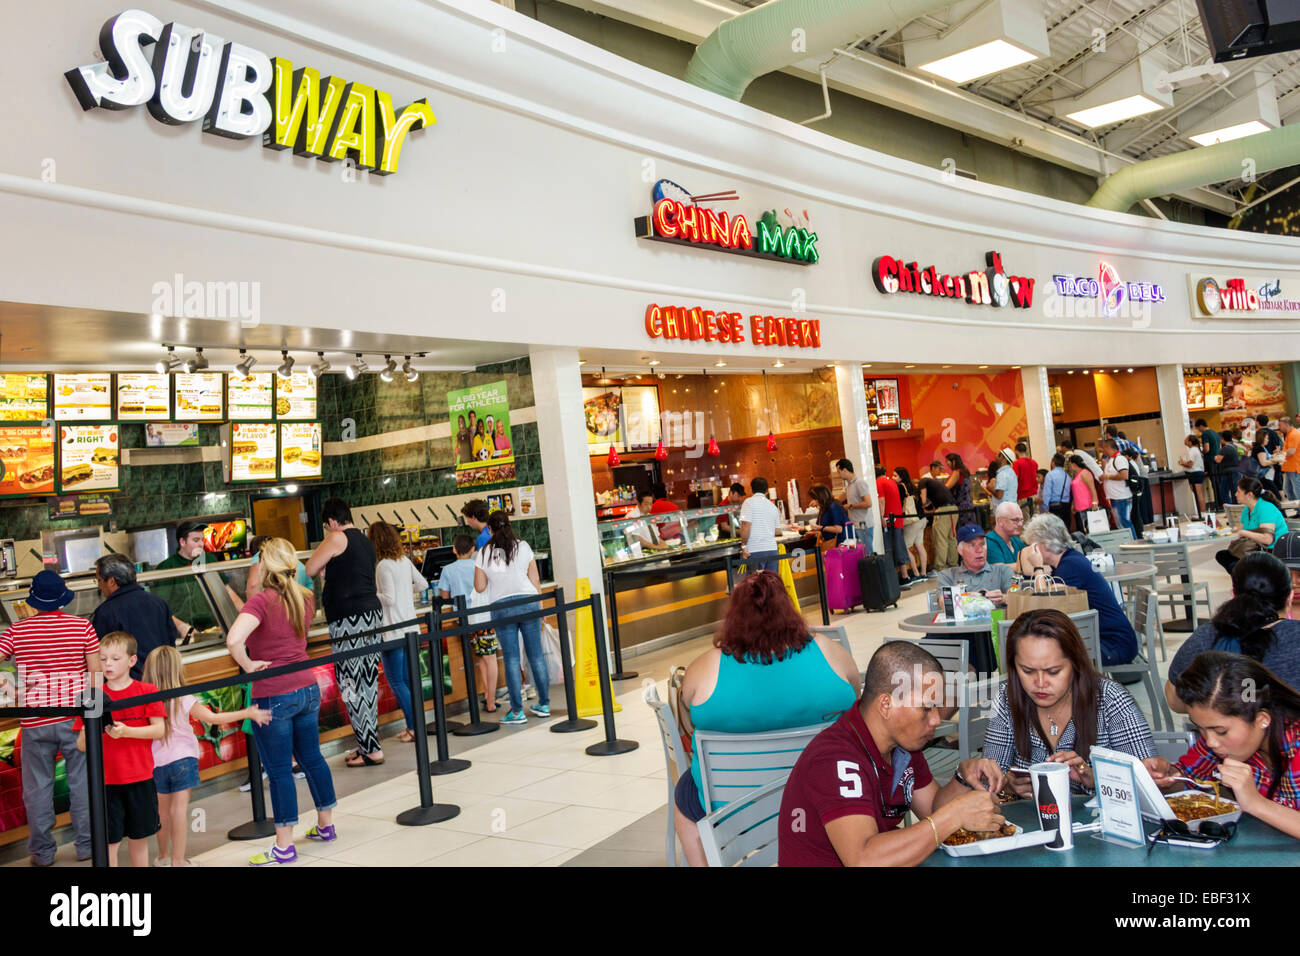 fast food outlets Fast food restaurants continued to target black and hispanic youth, who face higher risk for obesity and related diseases fast food advertising spending on spanish-.